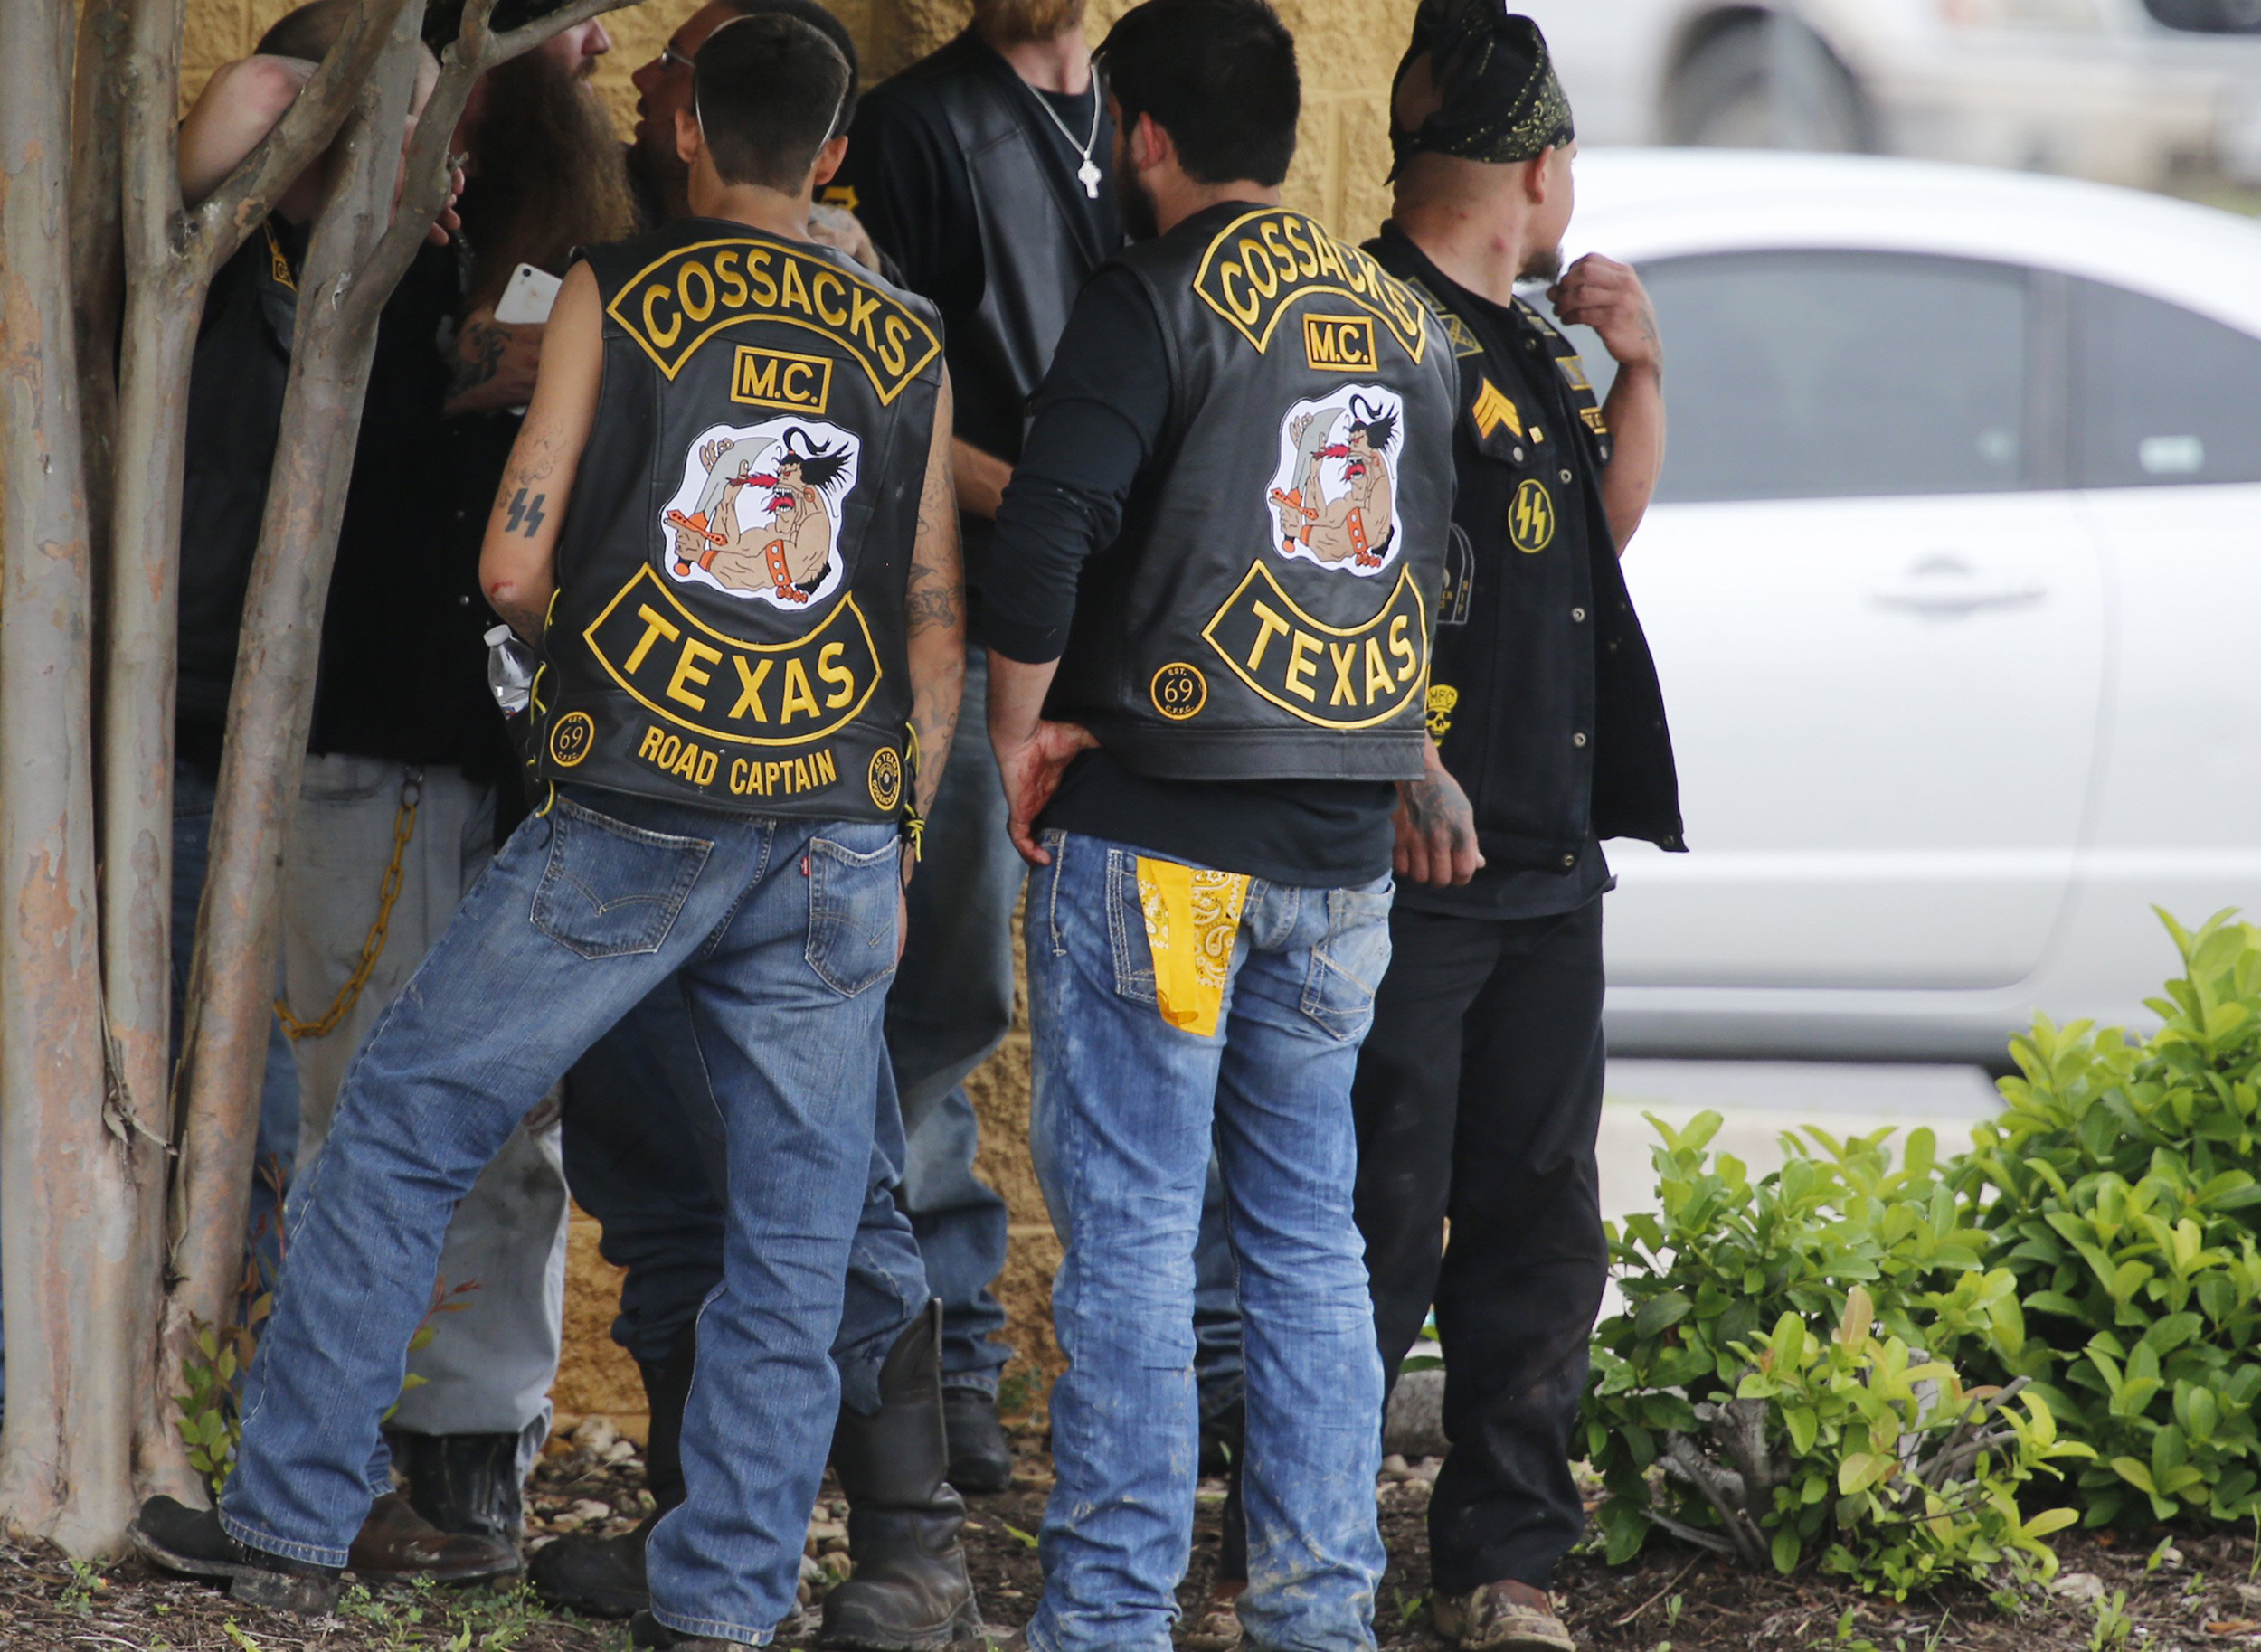 Outlaw Biker Gangs Prize U S  Soldiers, Feds Say